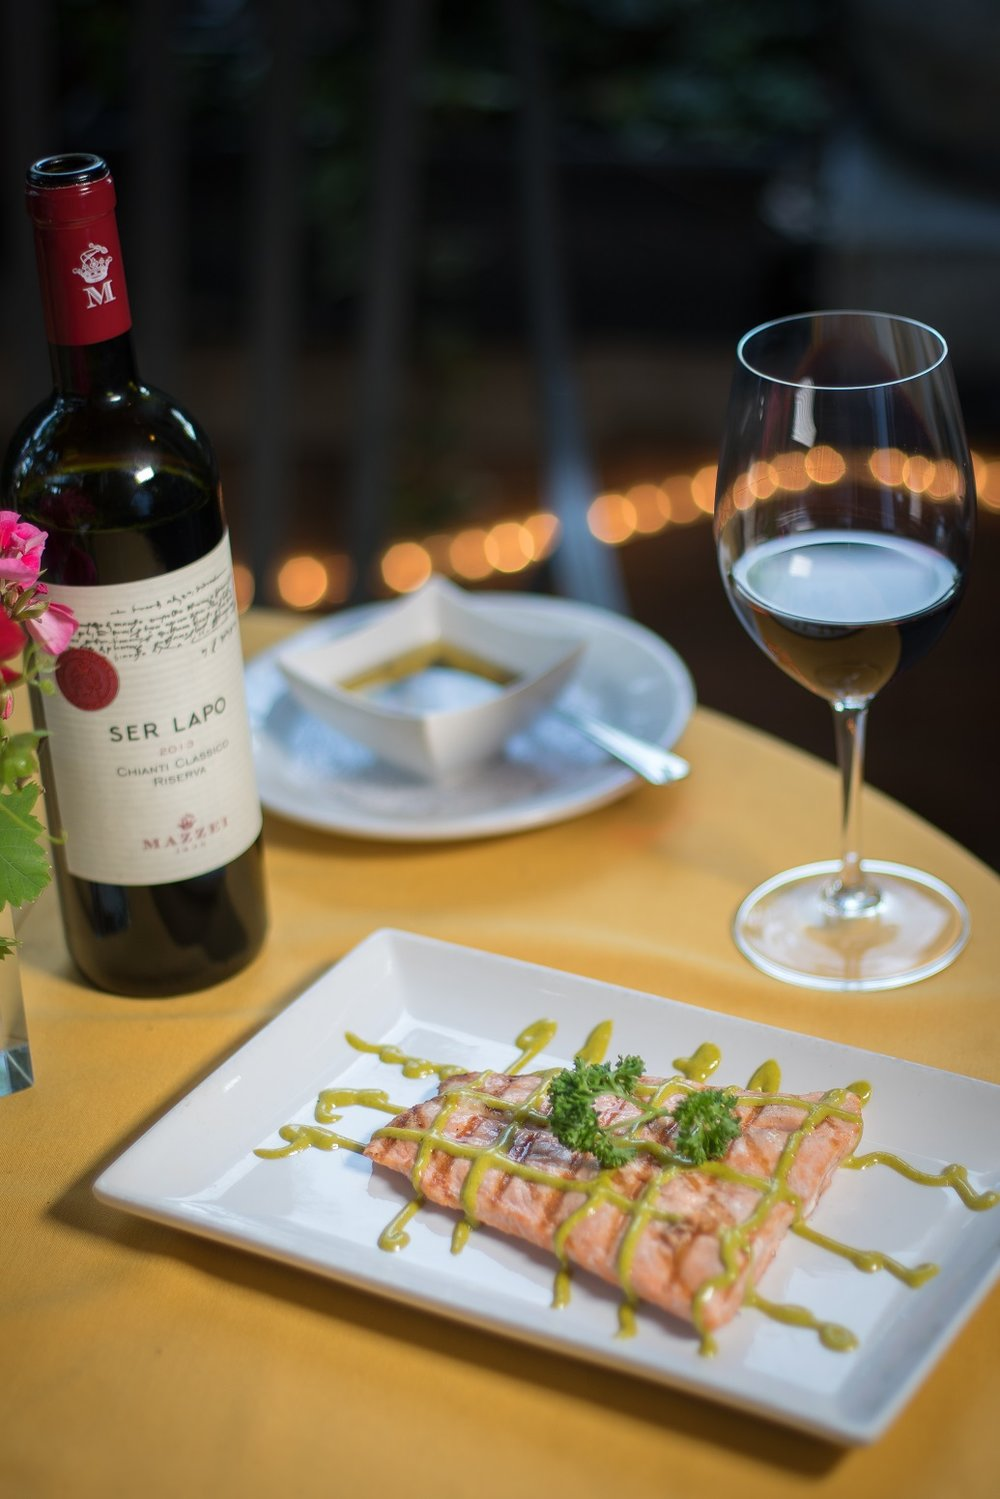 Salmone Alla Griglia - Fresh, 8oz. Alaskan Salmon filet, grilled to perfection and drizzled with fresh dill vinaigrette.